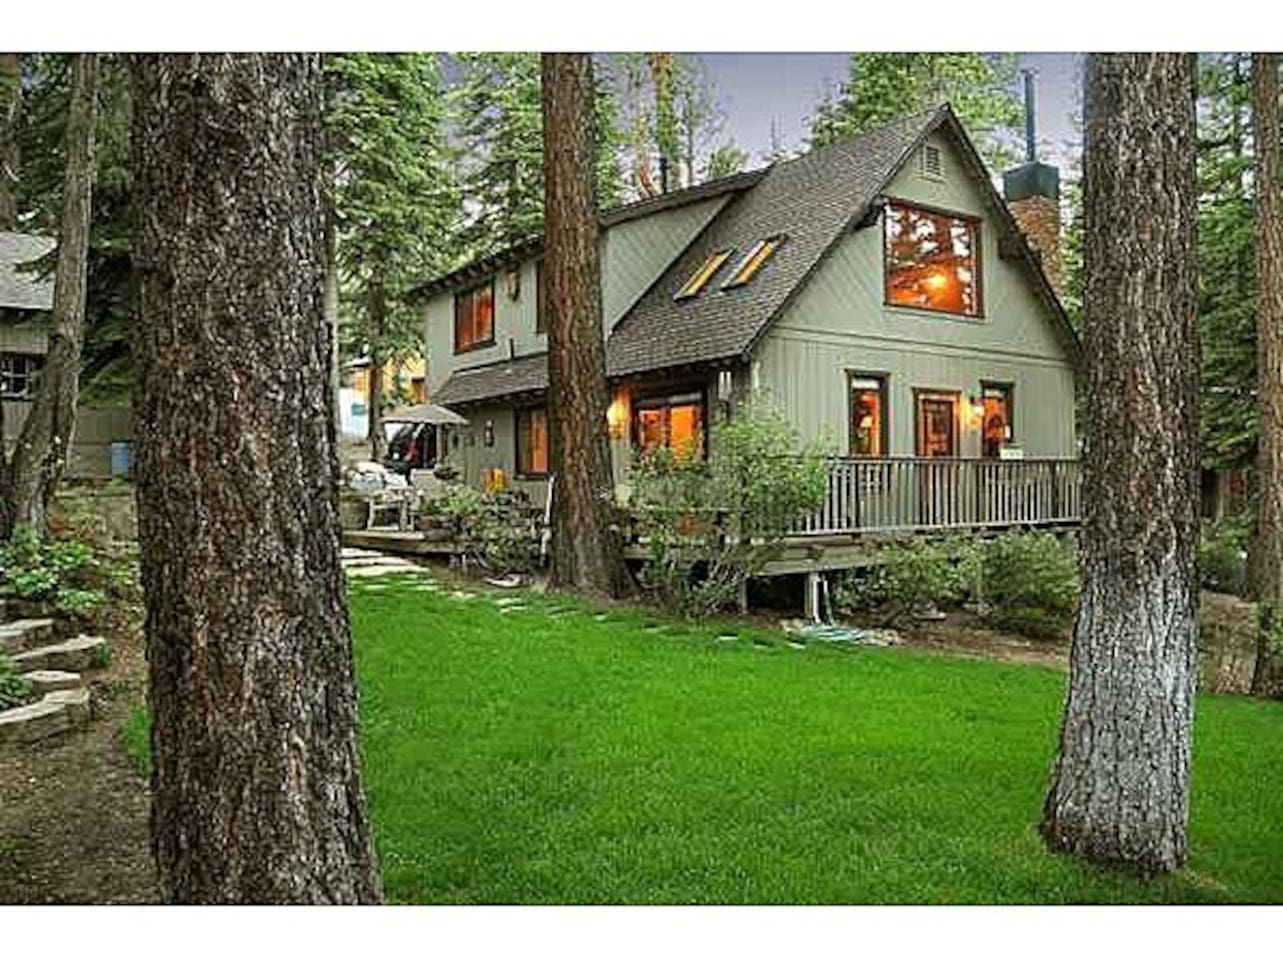 Storybook Charm w/ deck, lawn, hot tub, BBQ Grill, and horseshoe pit for relaxation and telling stories